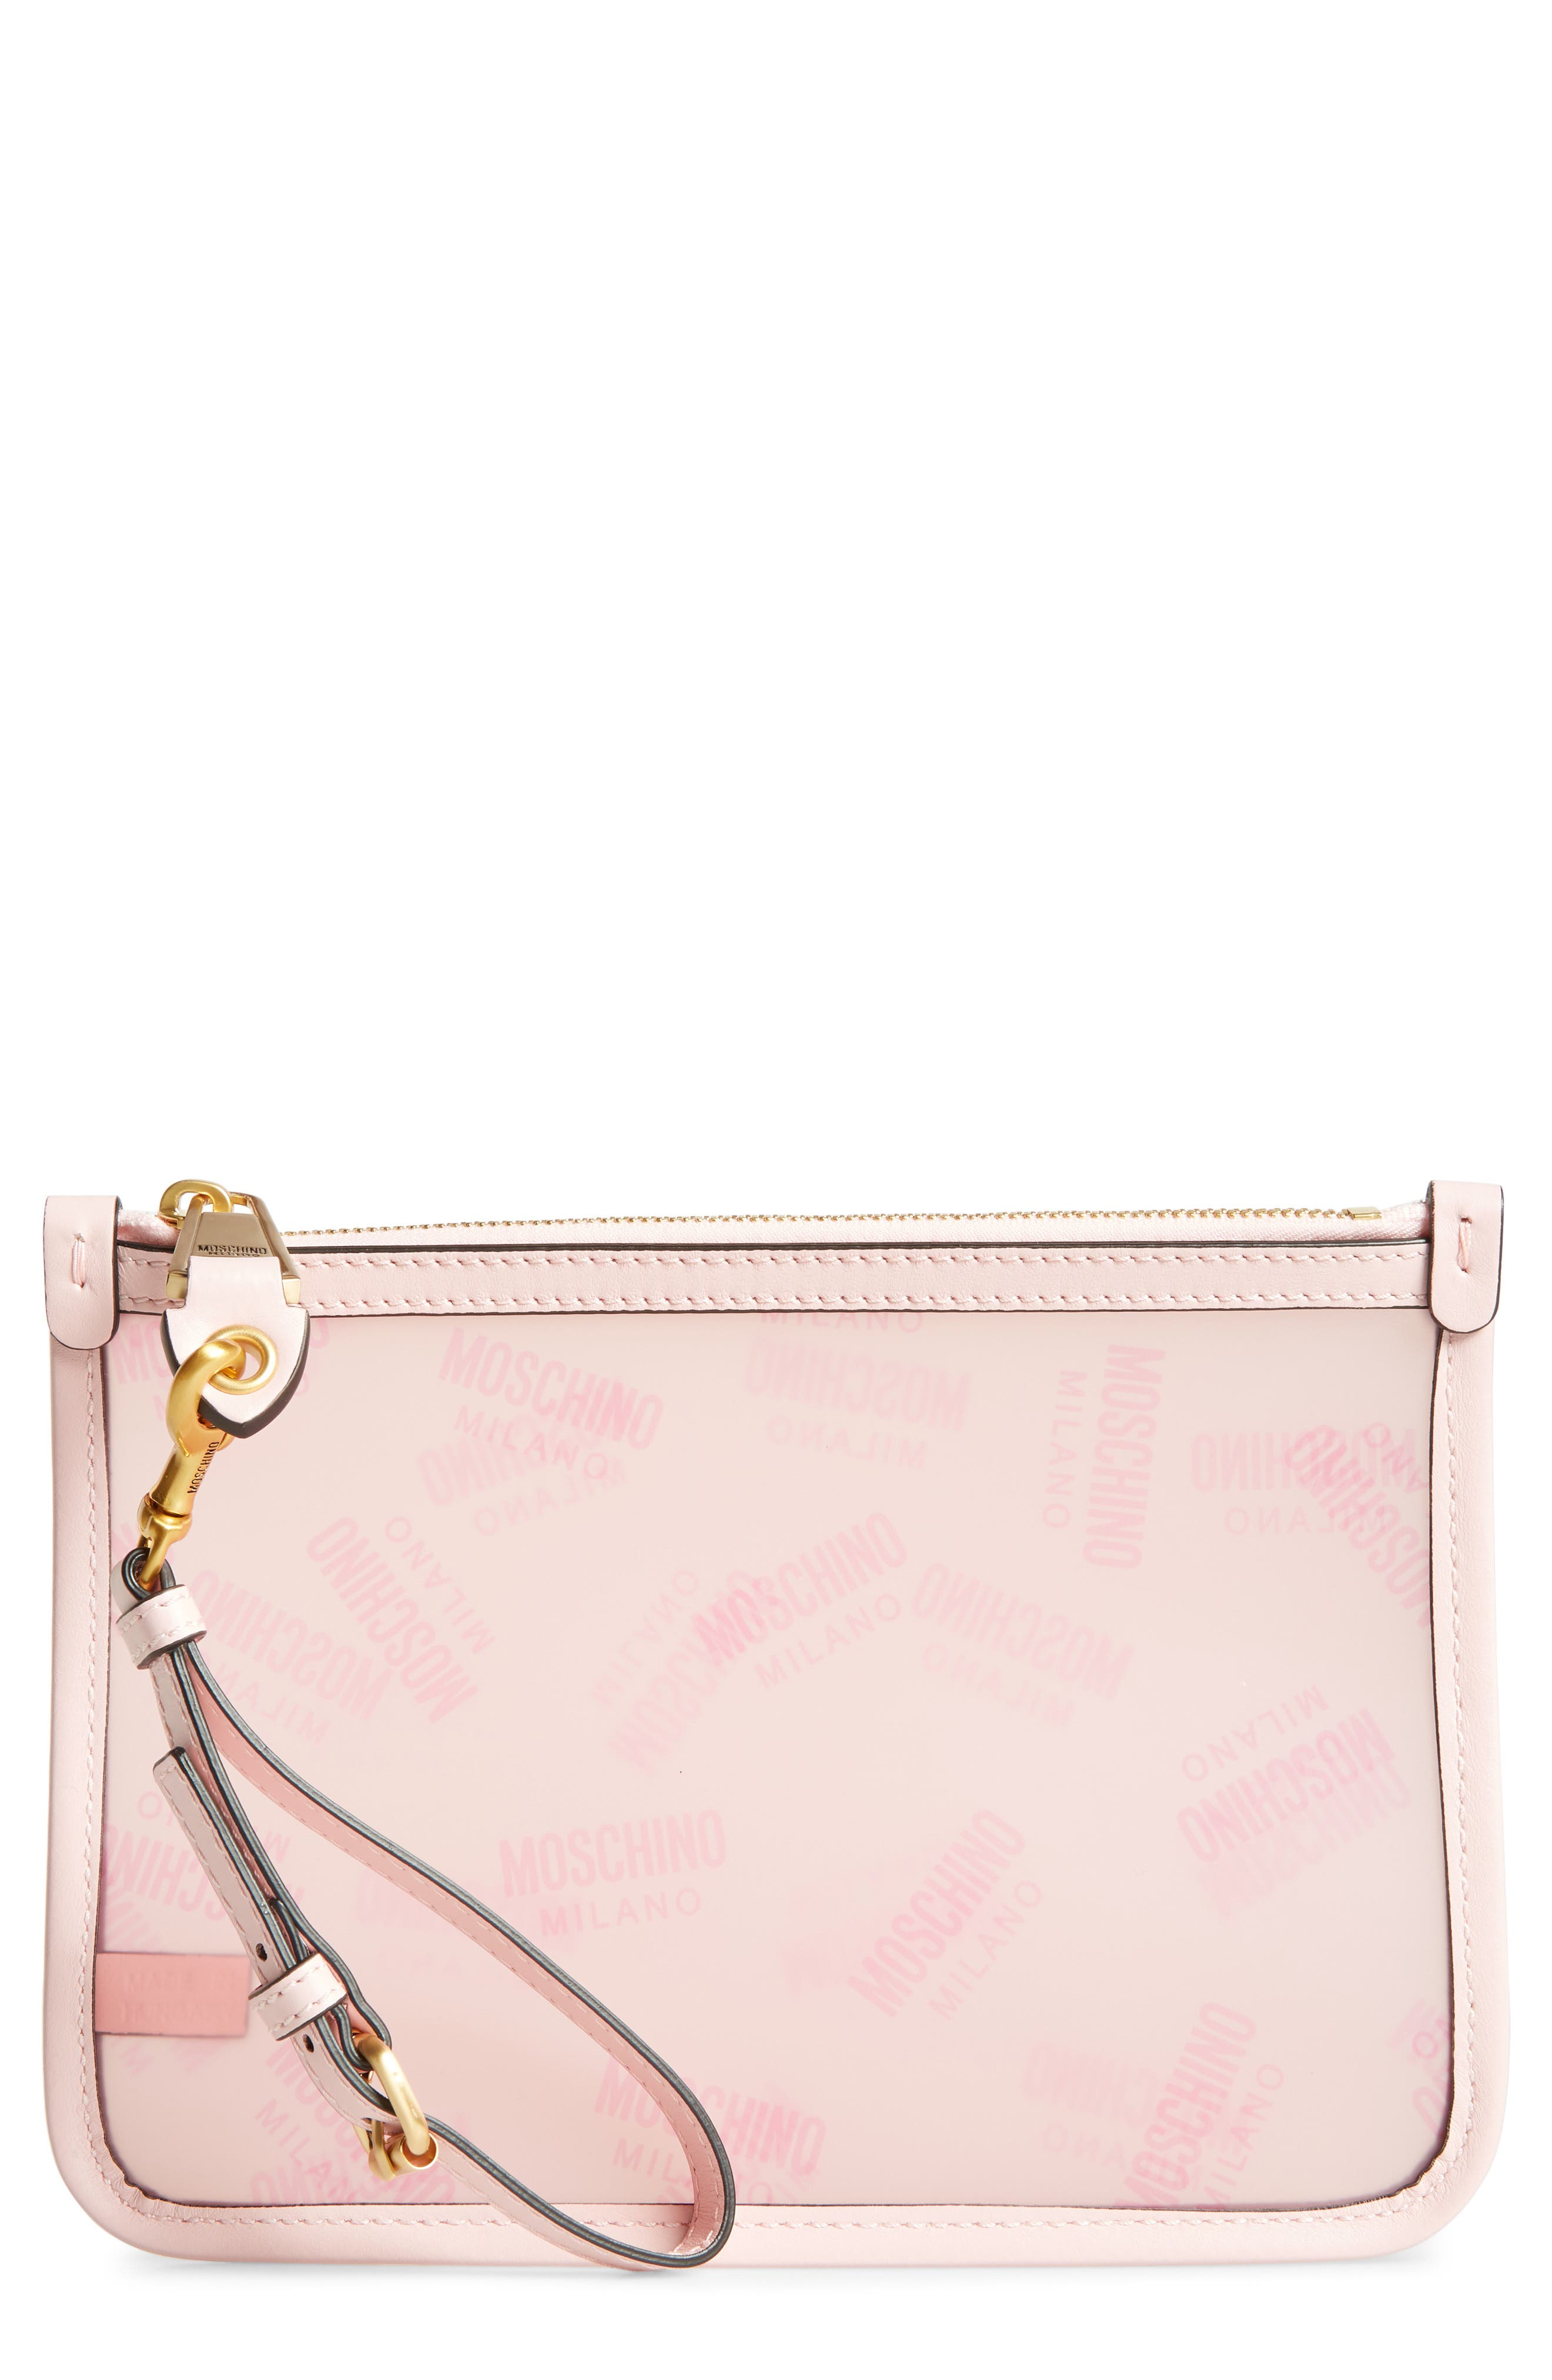 MOSCHINO, Transparent Logo Pouch, Main thumbnail 1, color, 683